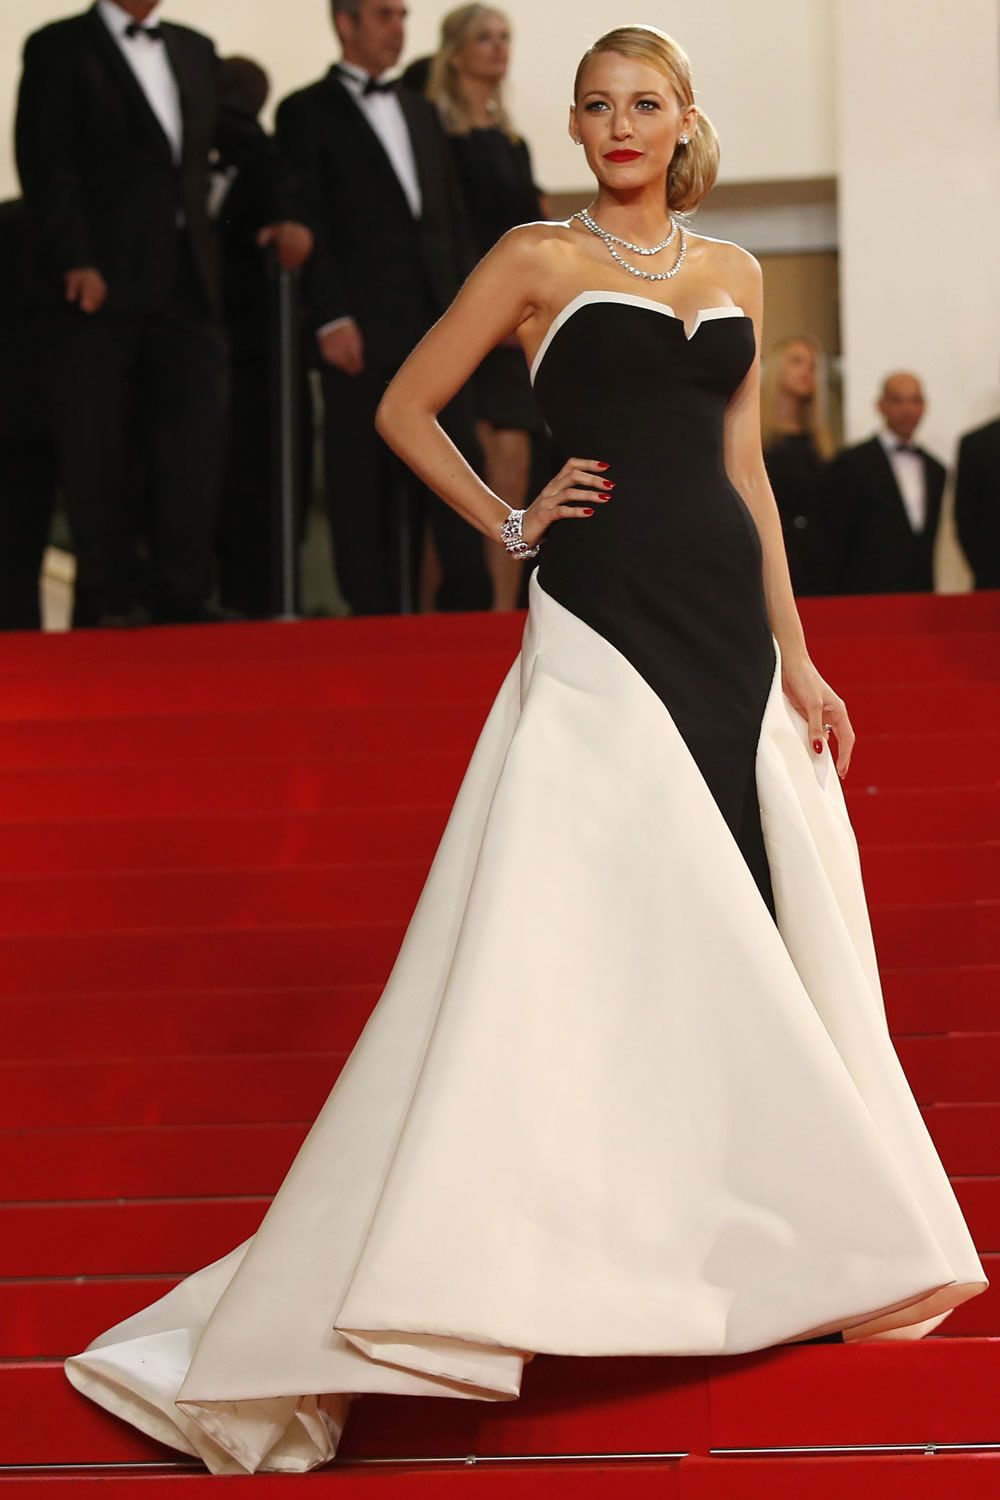 Best Cannes Film Festival dresses in history